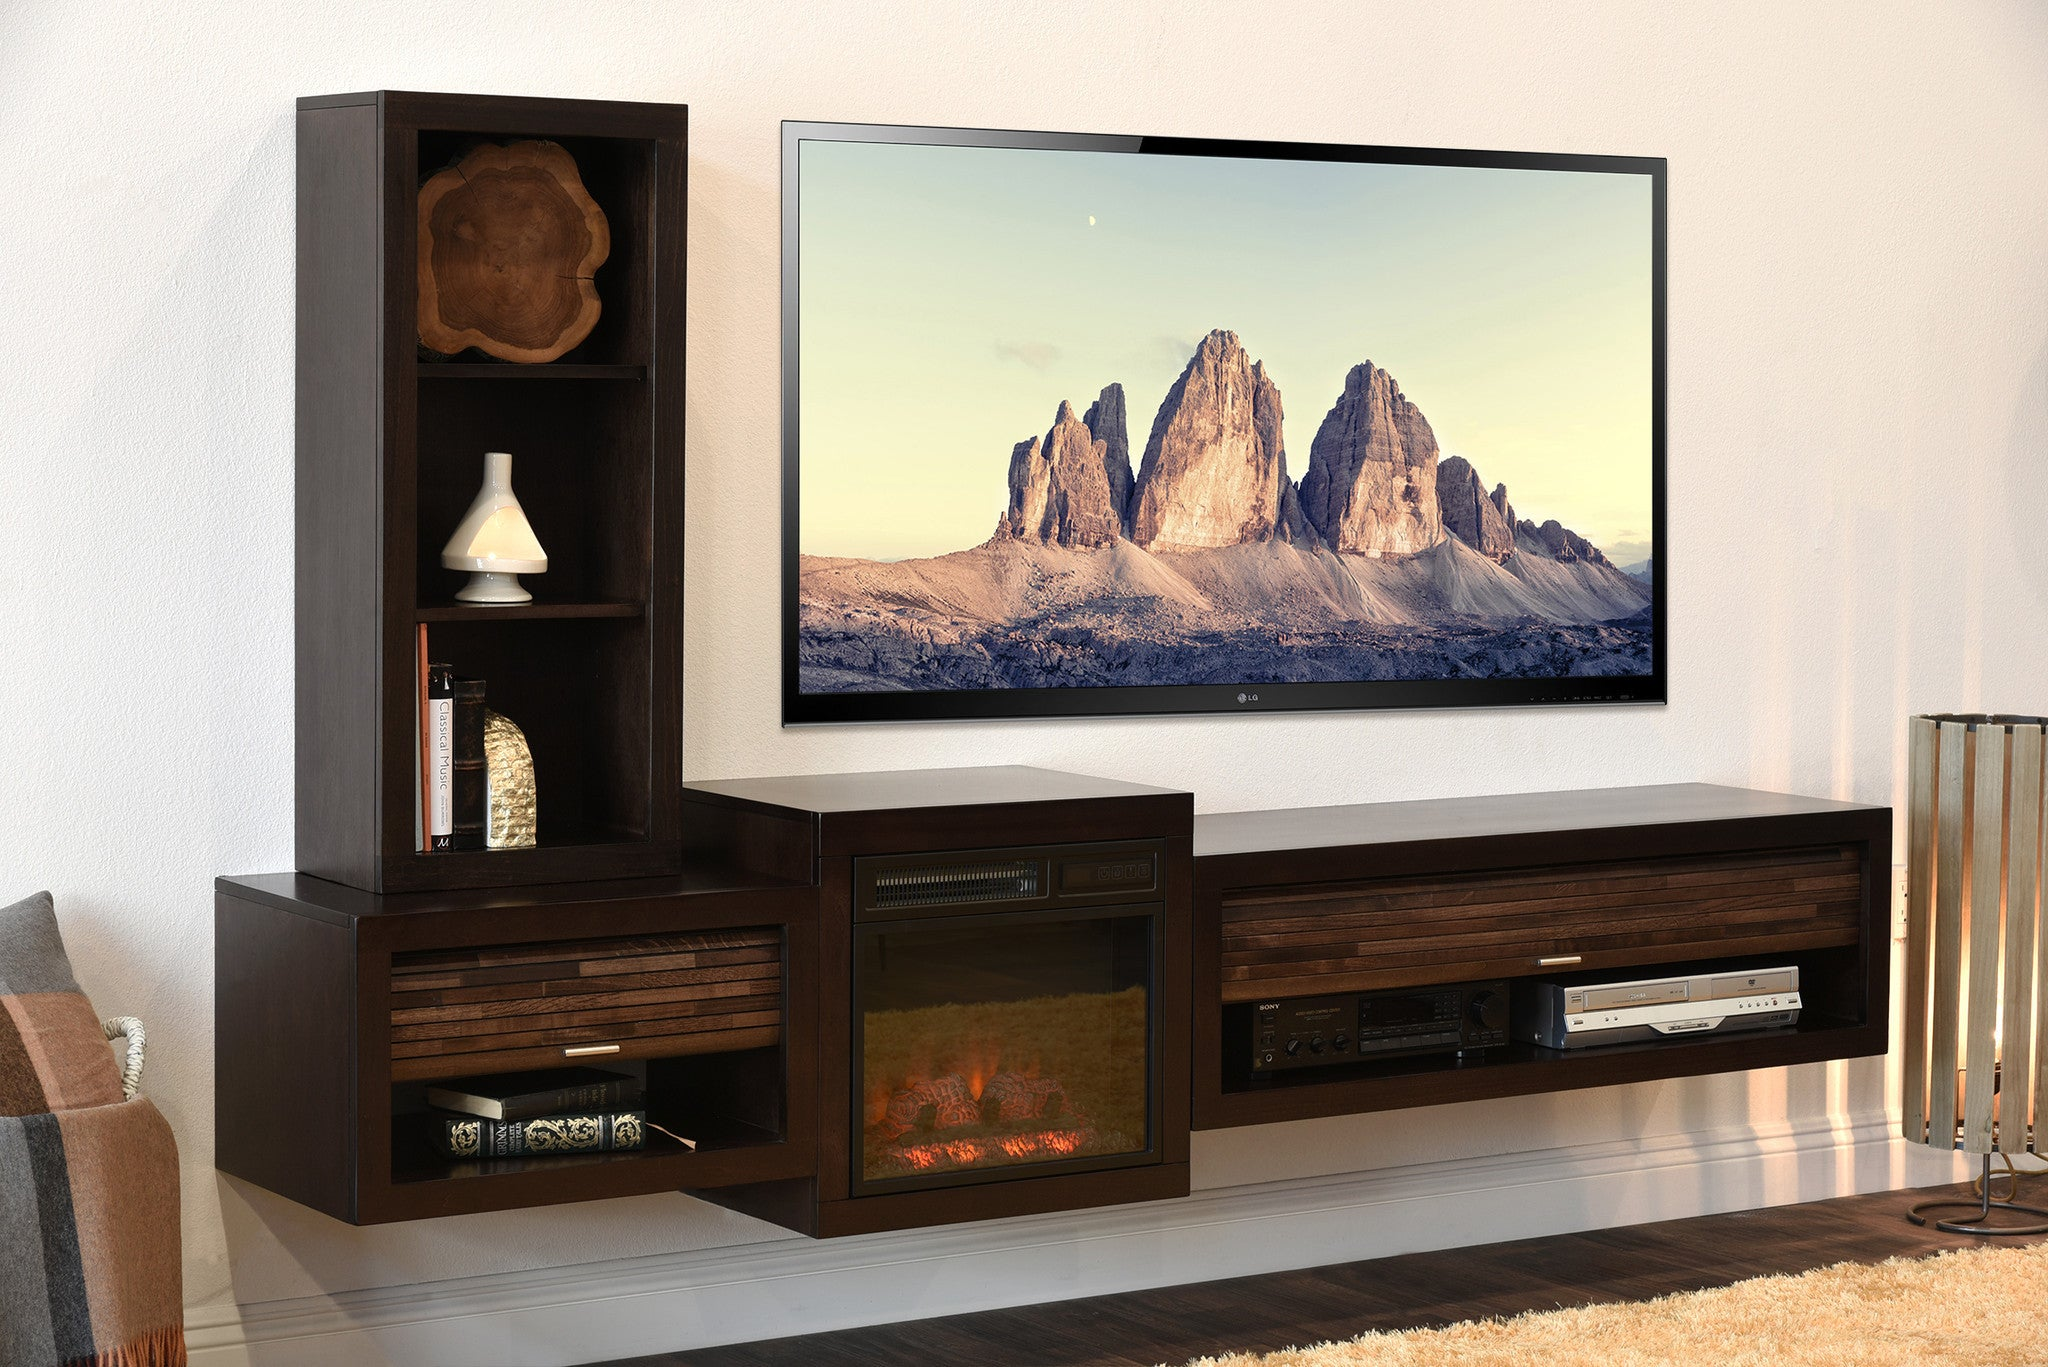 image cabinet tv fireplace rainy by perfect with small season of reisa home for decor stand